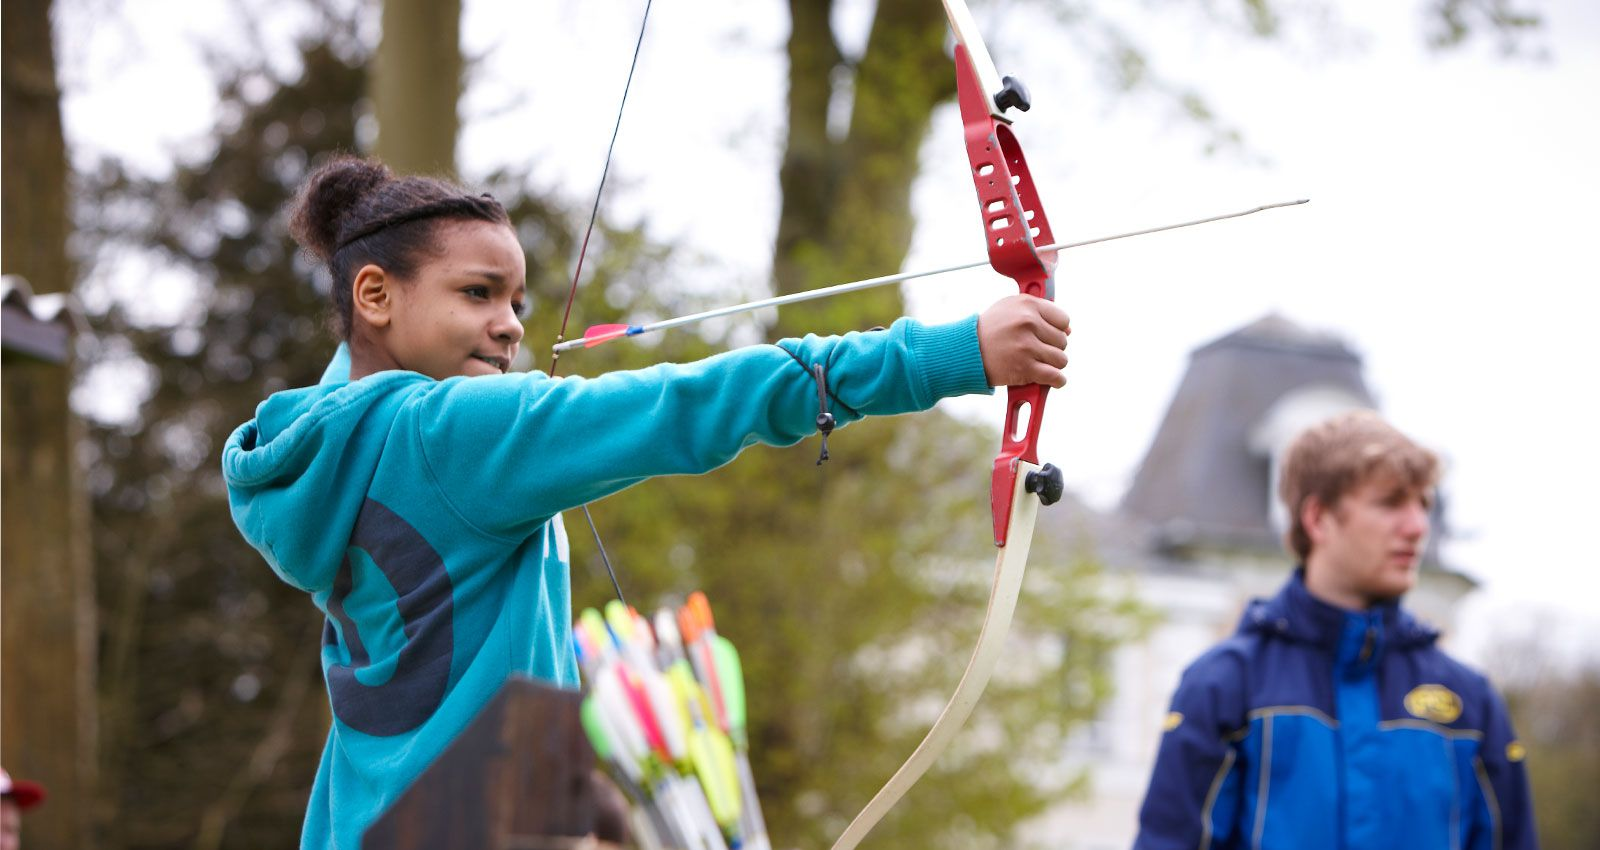 PGL Adventure Holidays - Specialist Holidays for 7-17 year olds across the UK and France - Overseas Explorer - Paris and Disneyland®